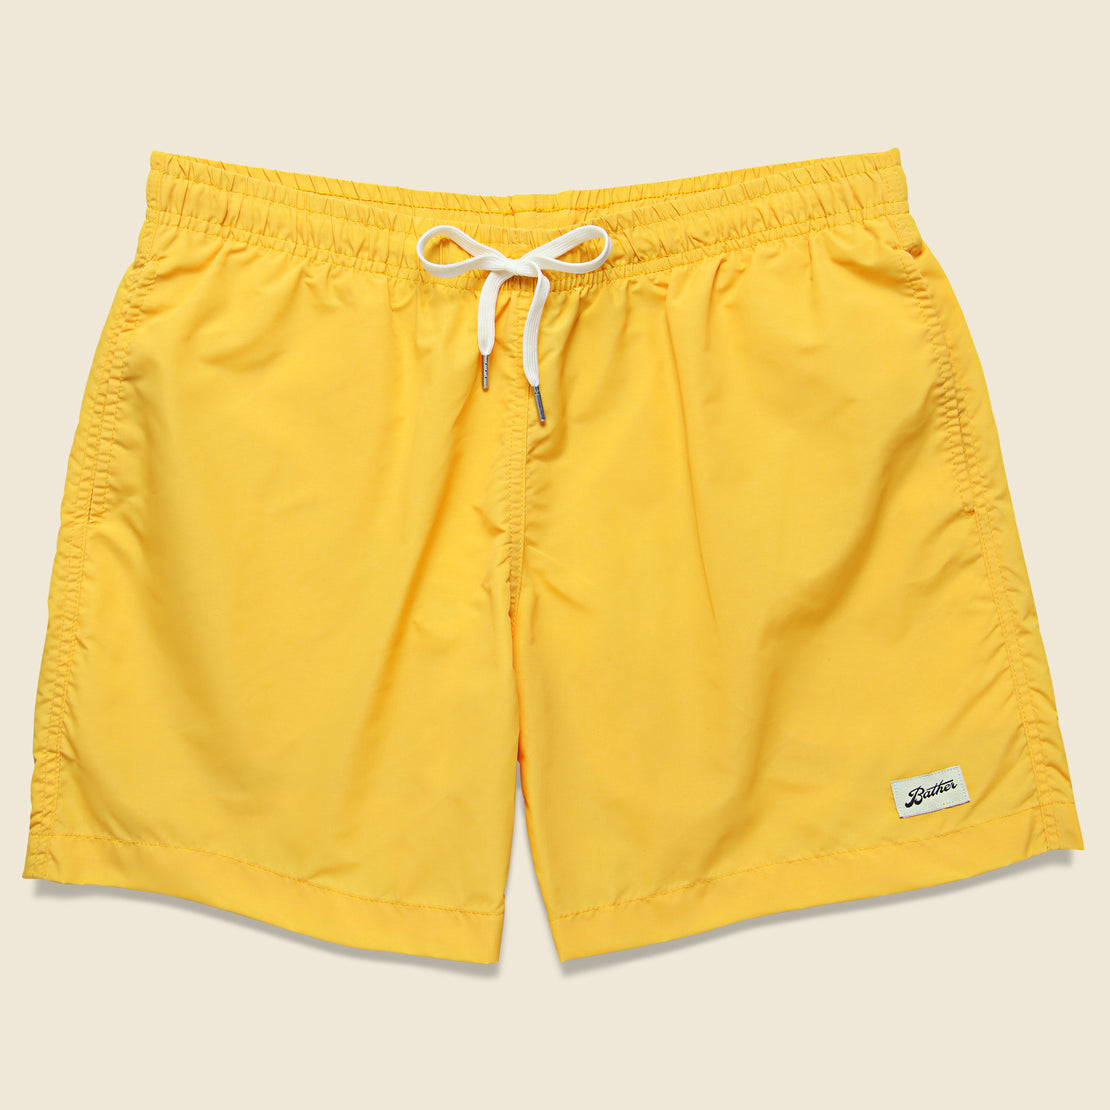 Bather Trunk Co. Solid Swim Trunk - Yellow